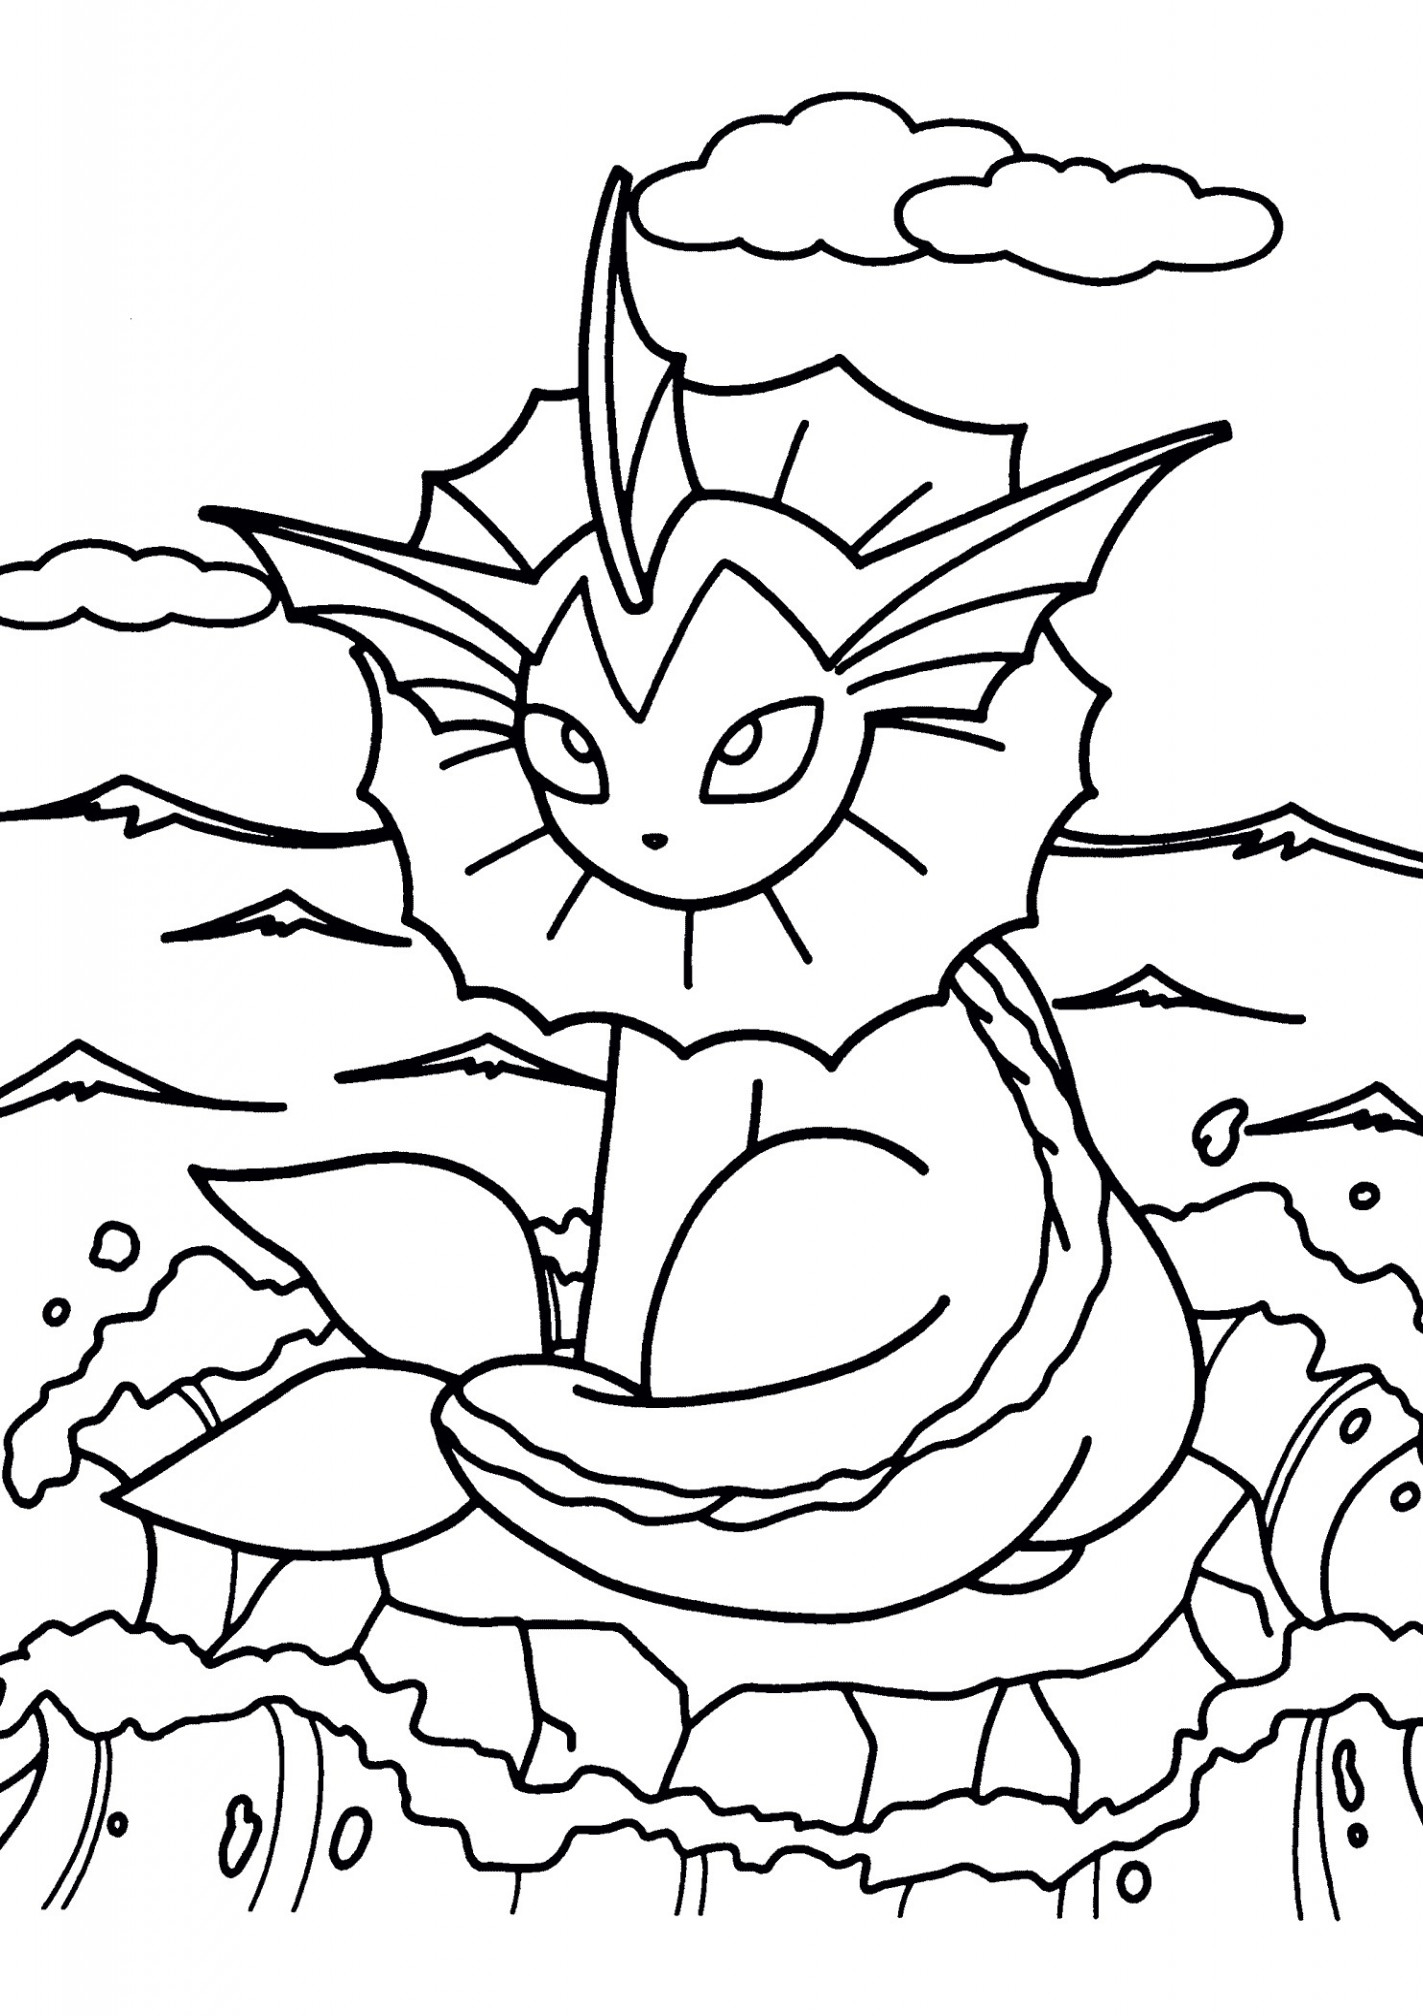 Disney Coloring Pages Free Free Childrens Printable Coloring Pages Free Printable Disney